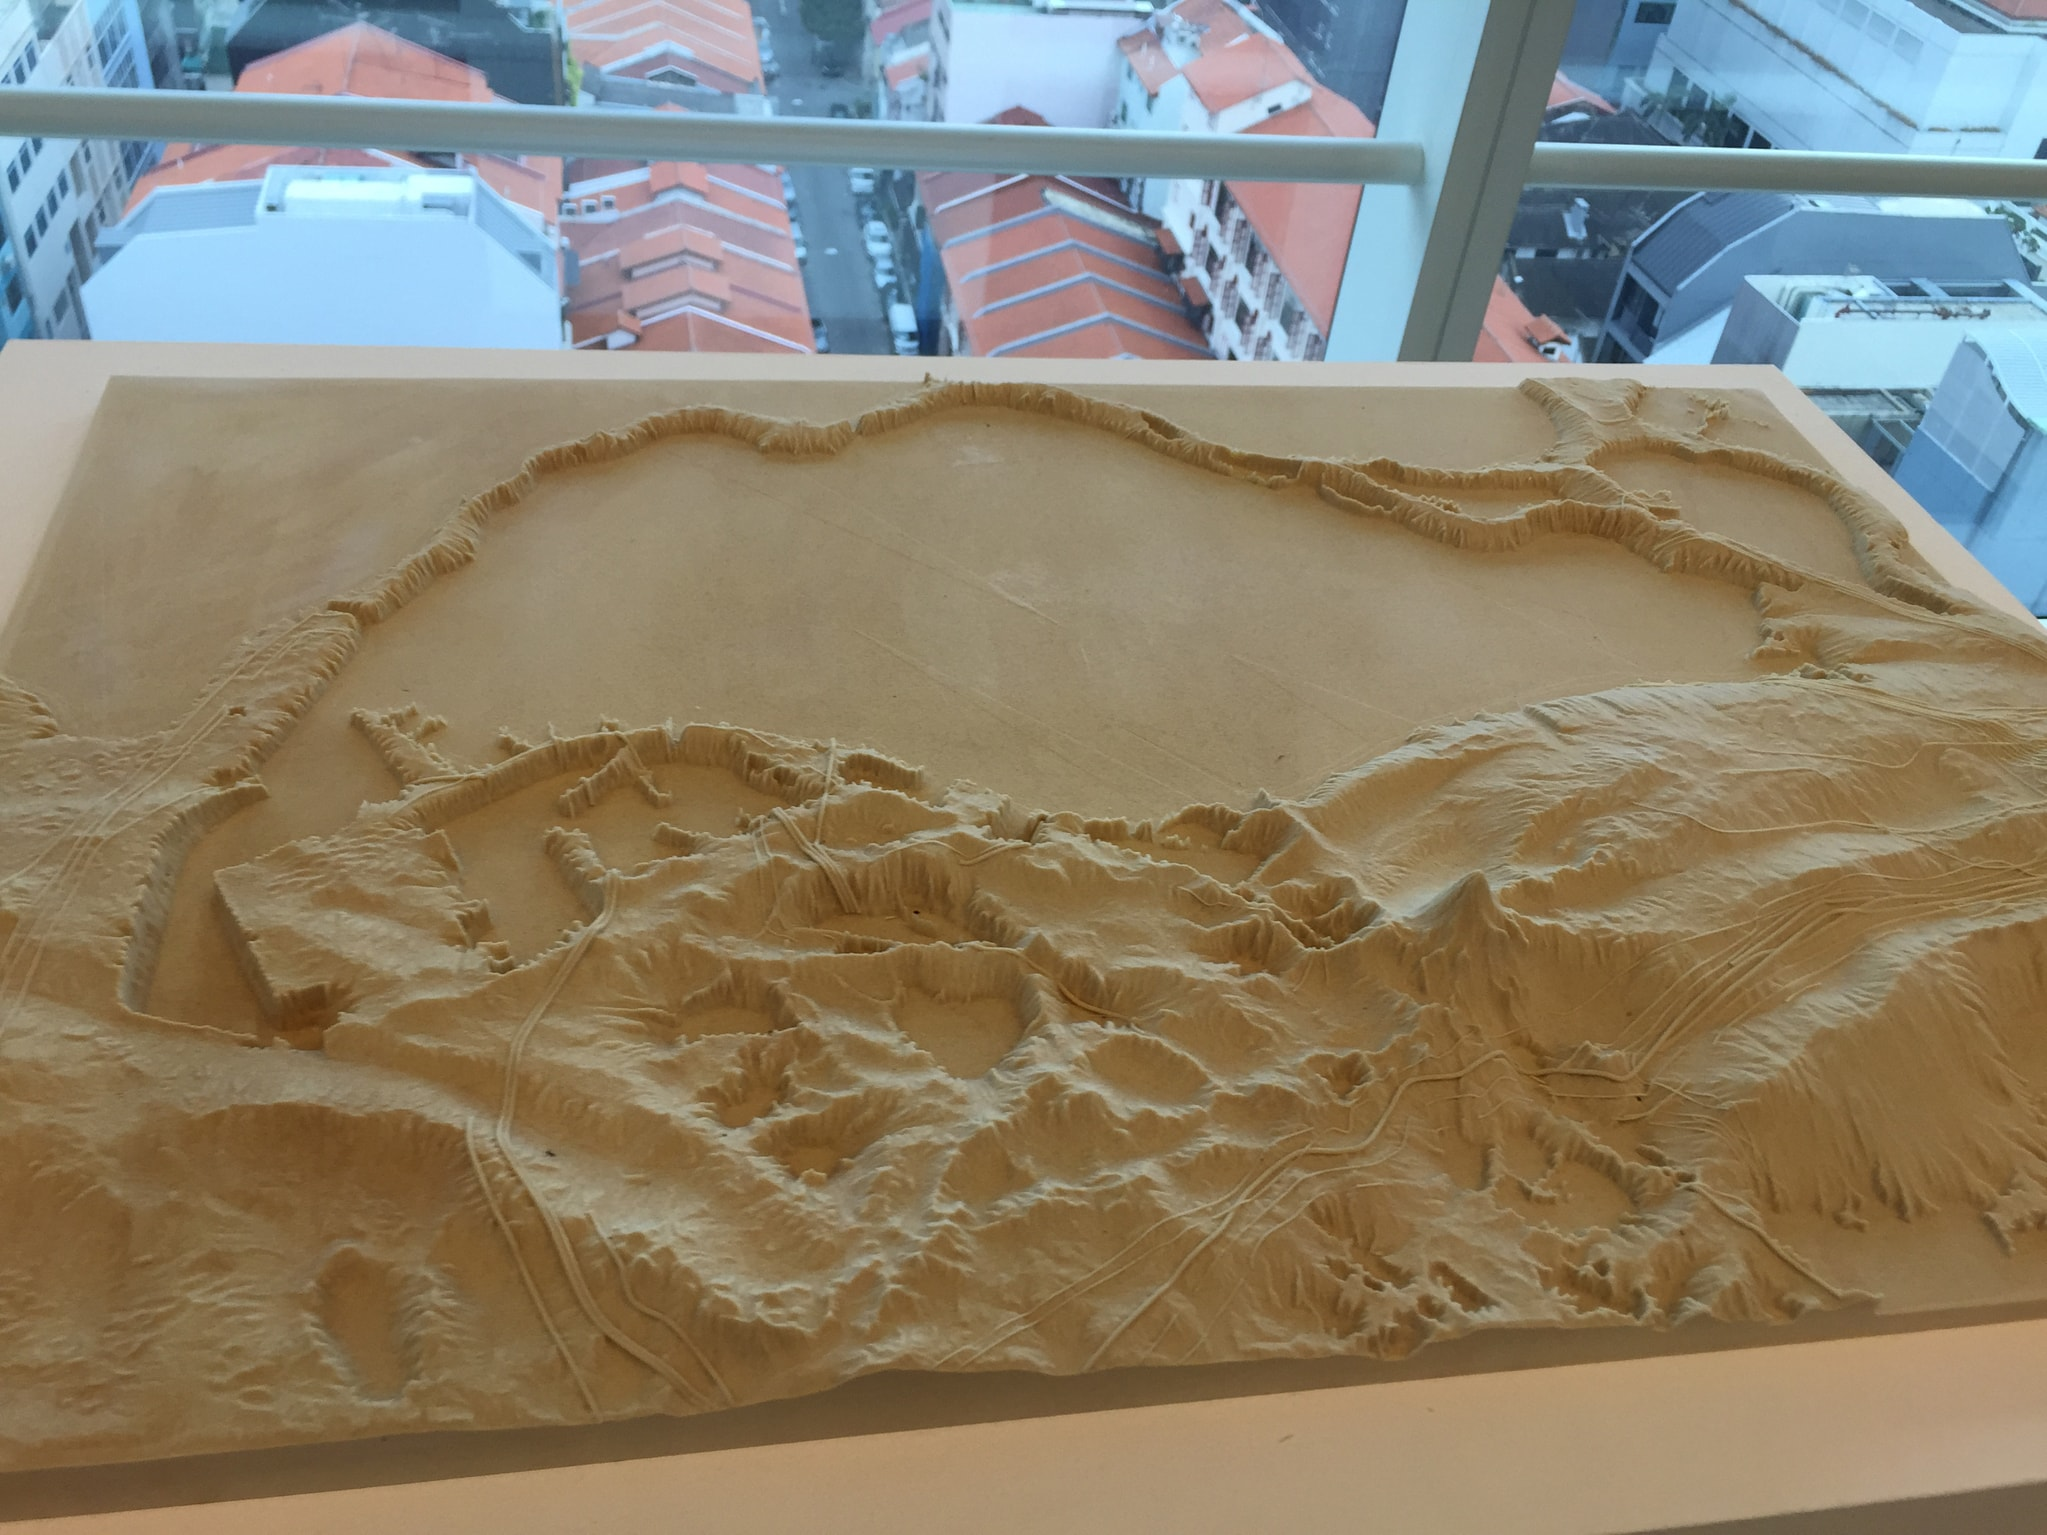 An art display, featuring a sand sculpture forming the island of Singapore.